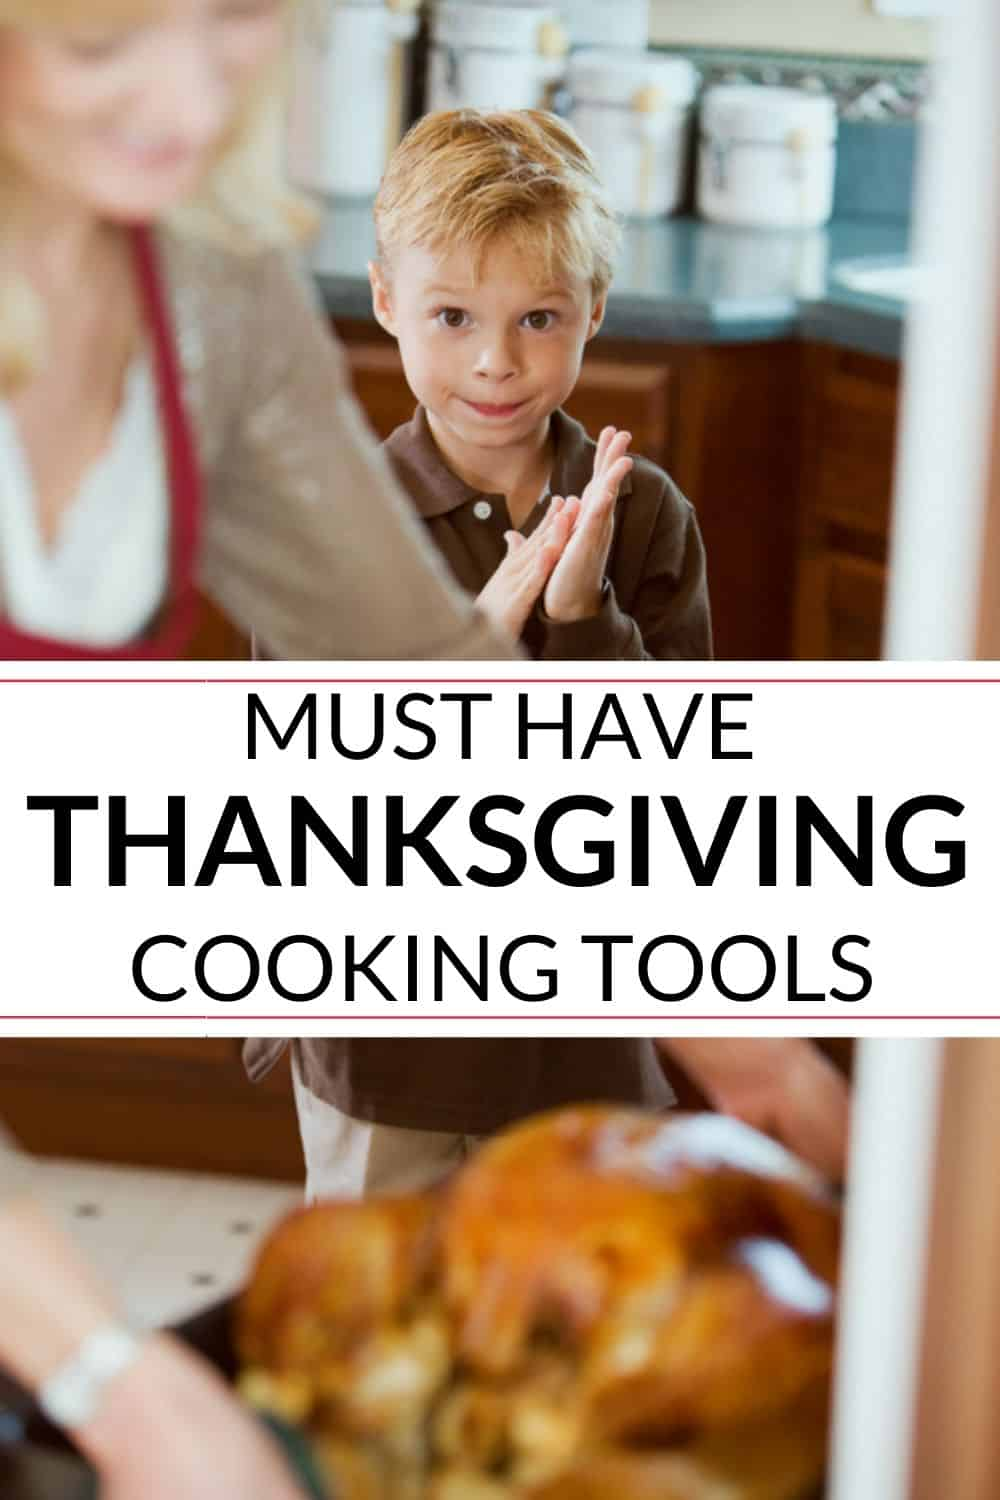 Thanksgiving meal coming out of the oven with child